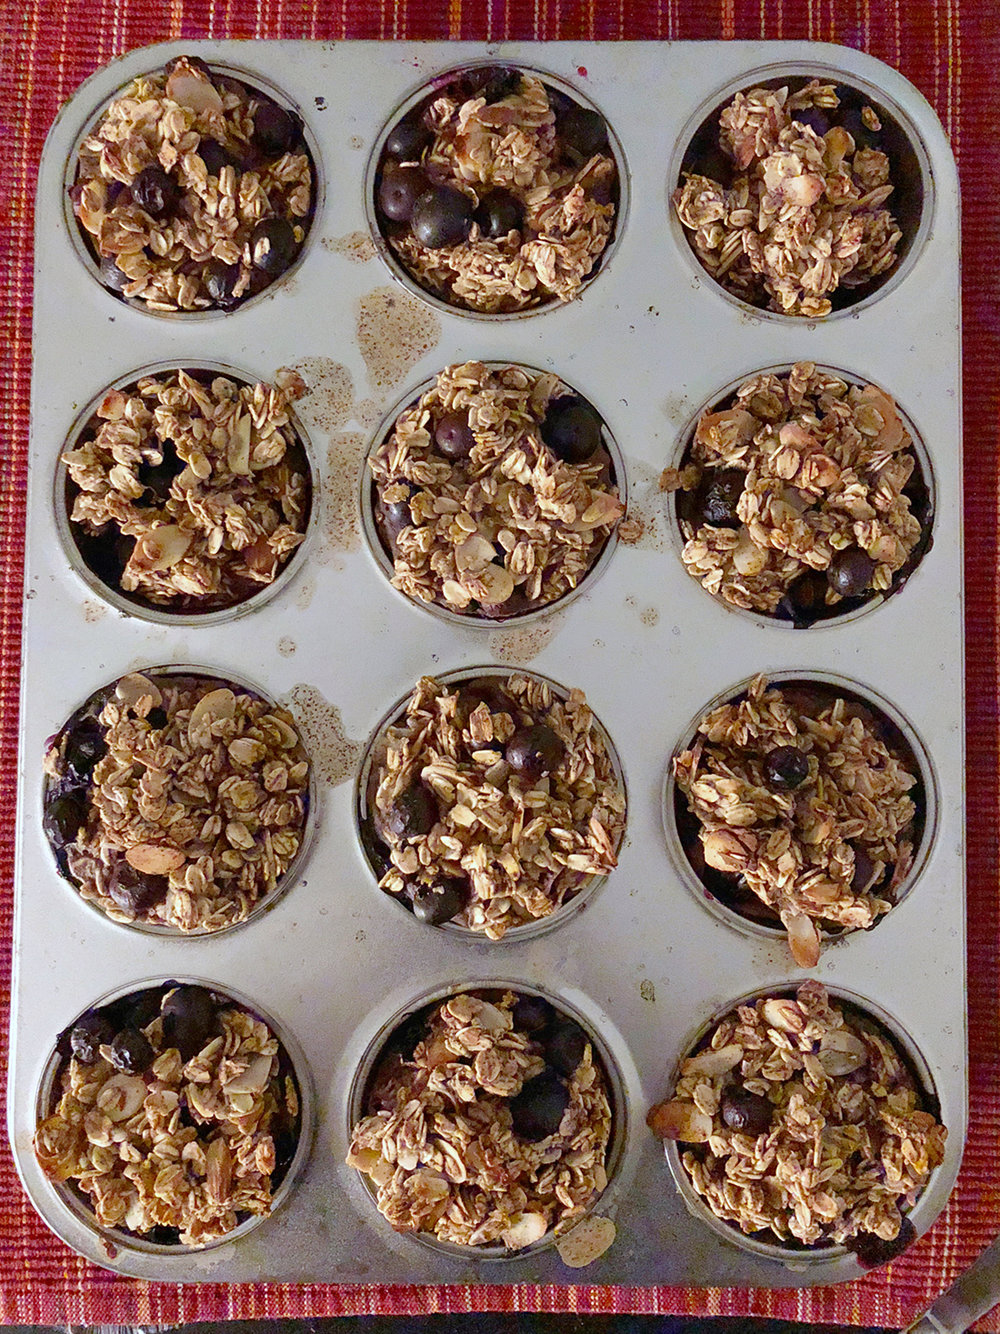 These blueberry almond oatmeal cakes were super easy to make for breakfast/snack. Recipe by: Shelikesfood.com.